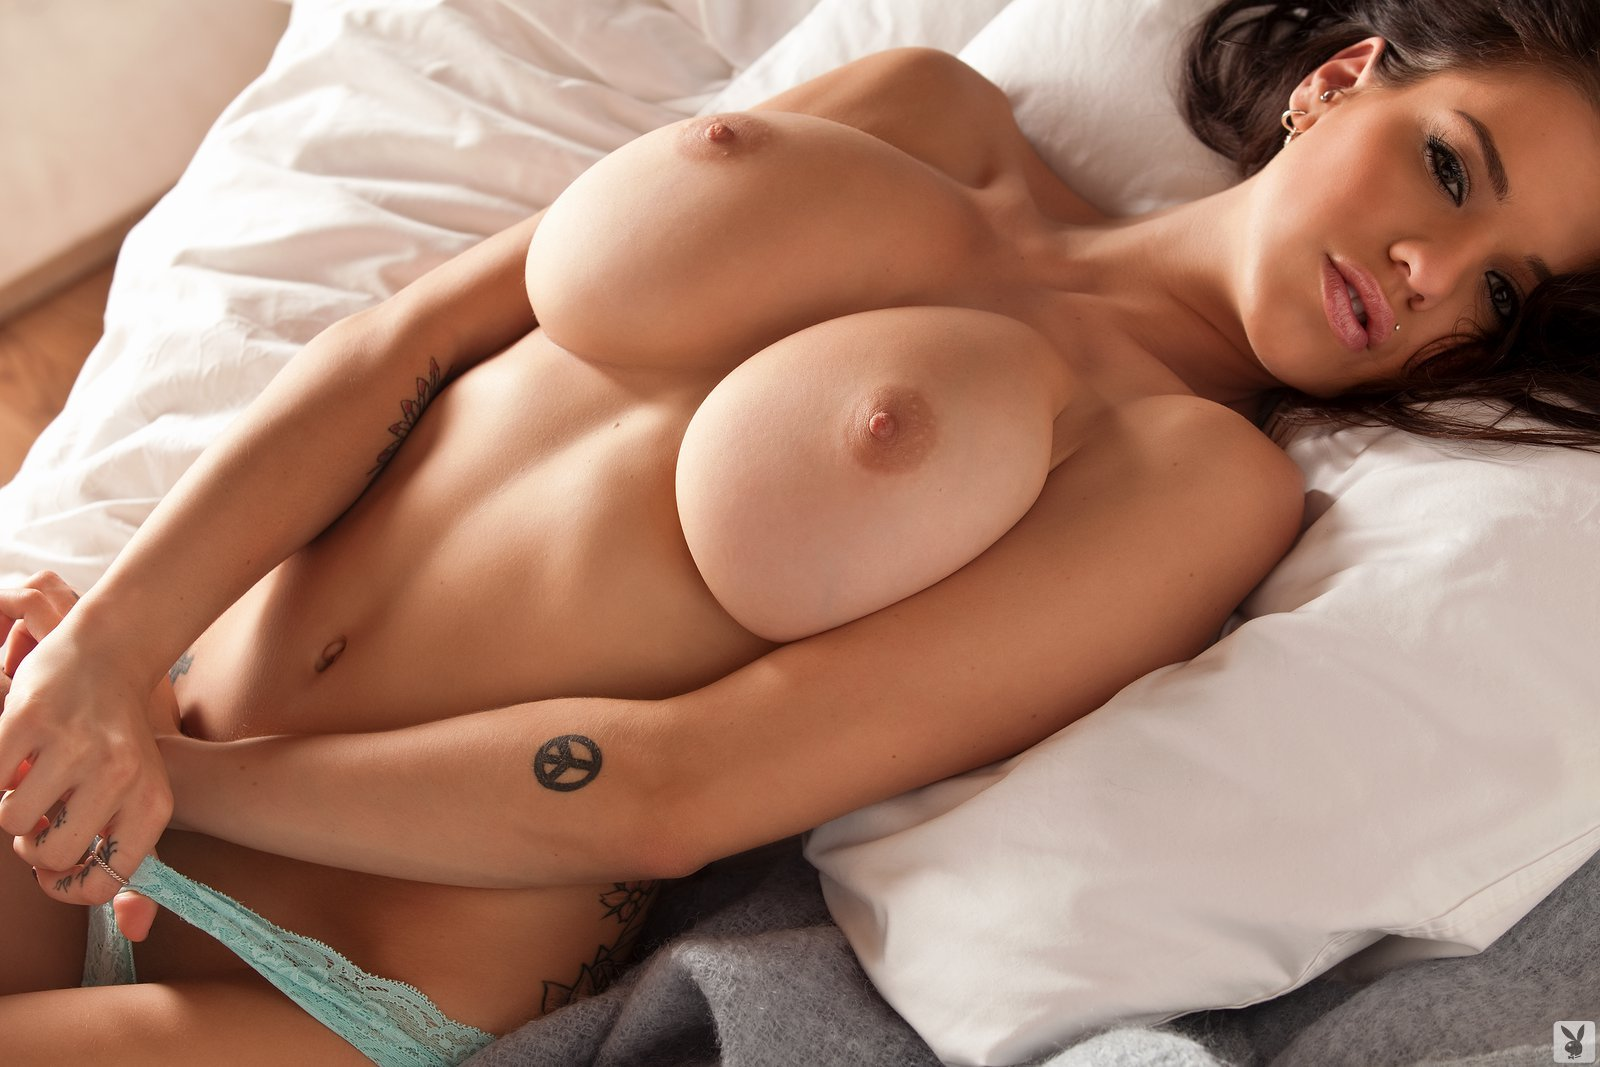 Girl boobs lying down